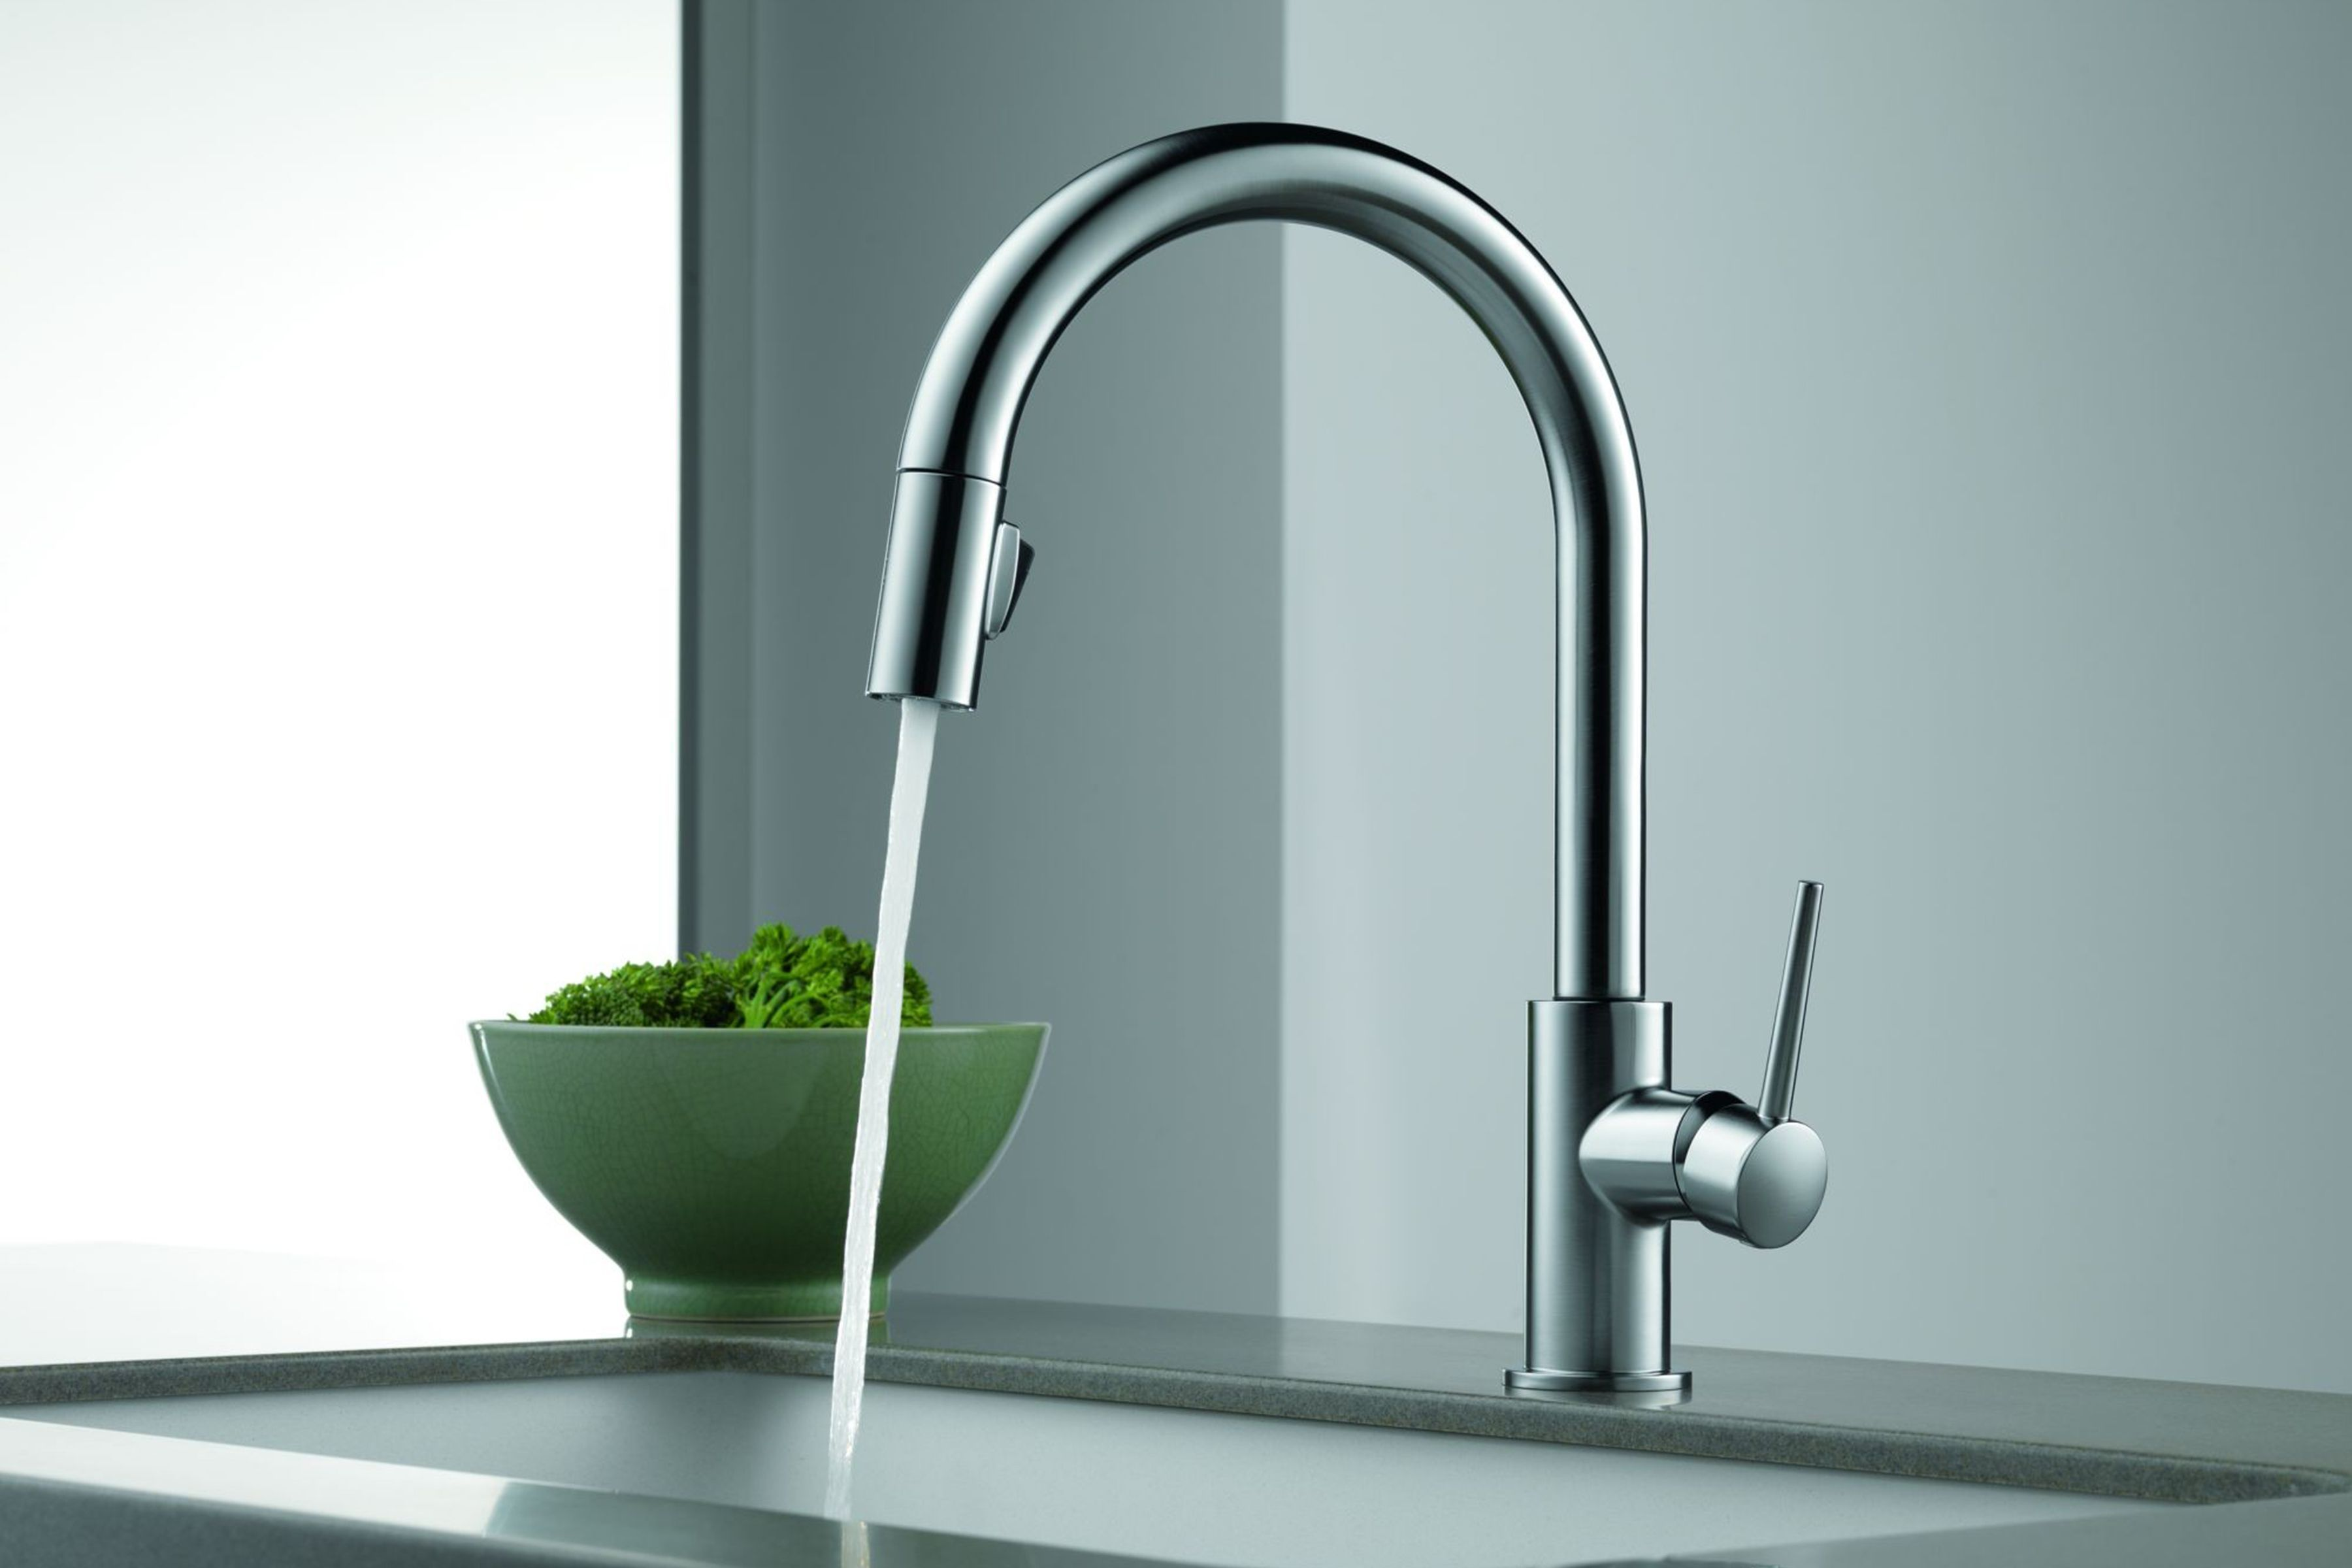 Inexpensive Costco Kitchen Faucets For Your Best Kitchen Faucet Idea Kohler Stainless S Best Kitchen Faucets Single Handle Kitchen Faucet Delta Kitchen Faucet